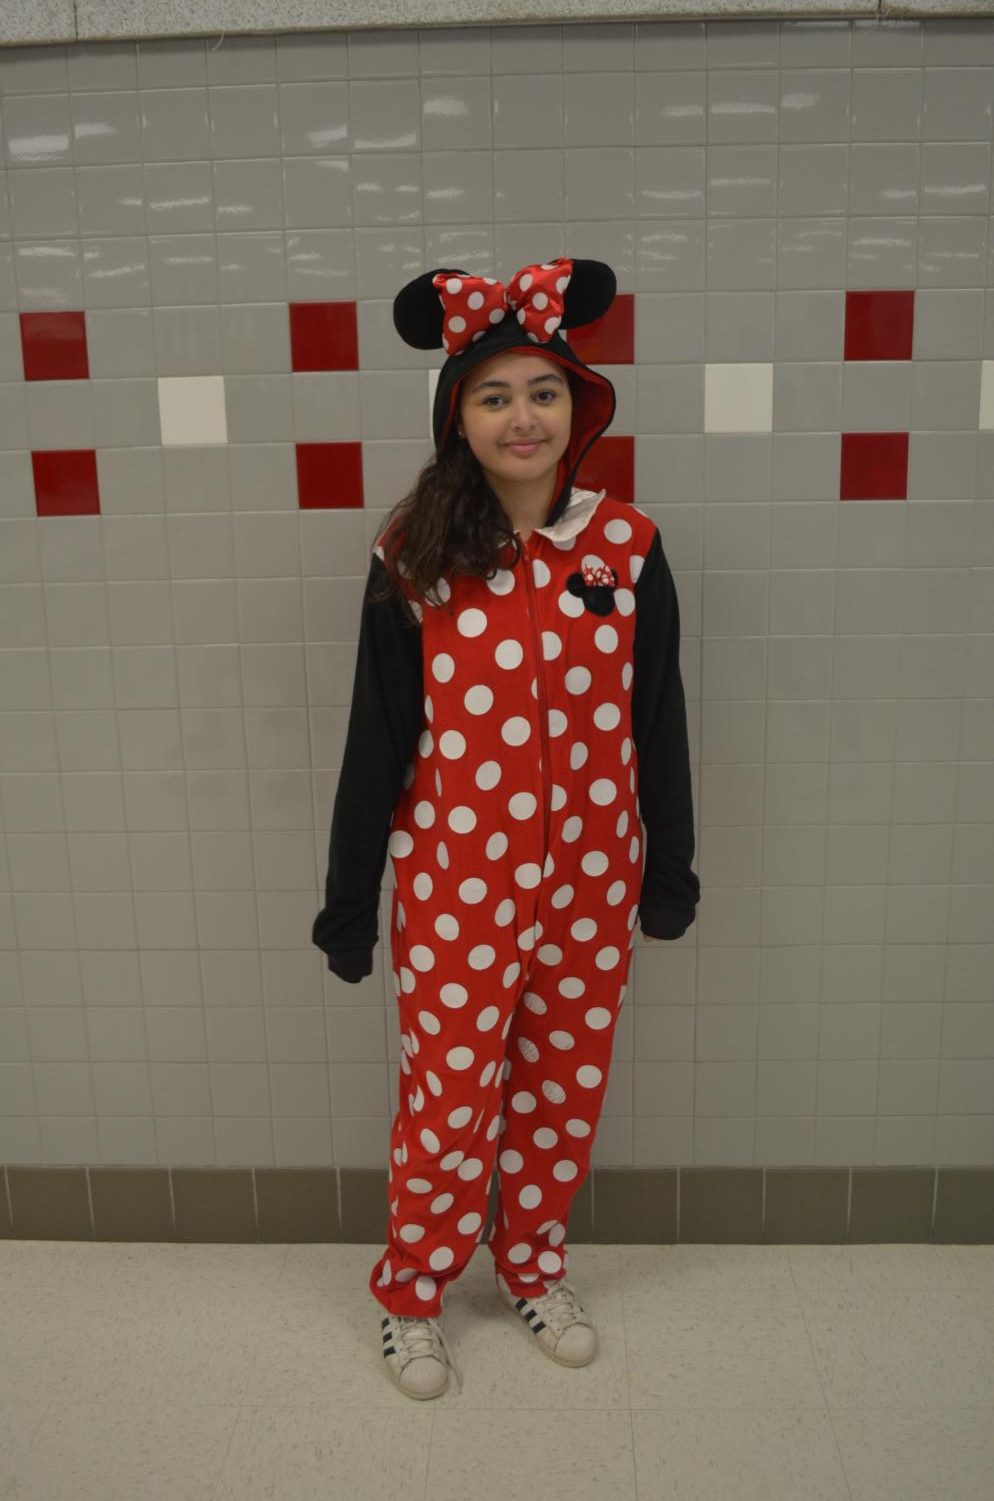 Freshman+Loujayne+Malkawi+dresses+up+as+Minnie+Mouse+in+a+onesie.